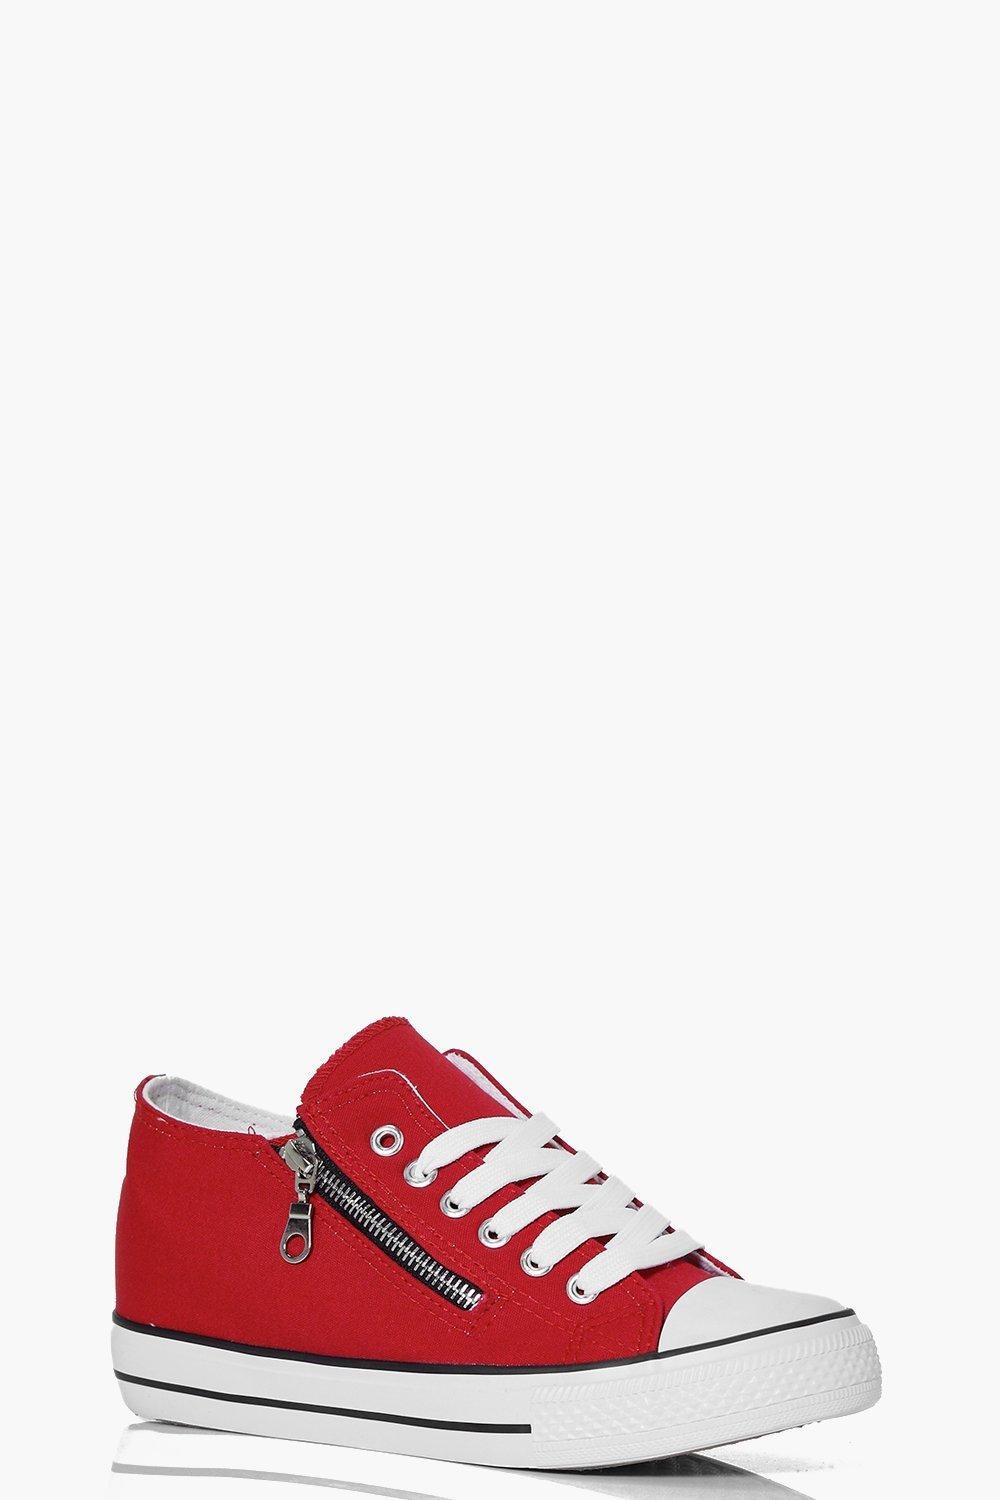 Ruby Side Zip Lace Up Canvas